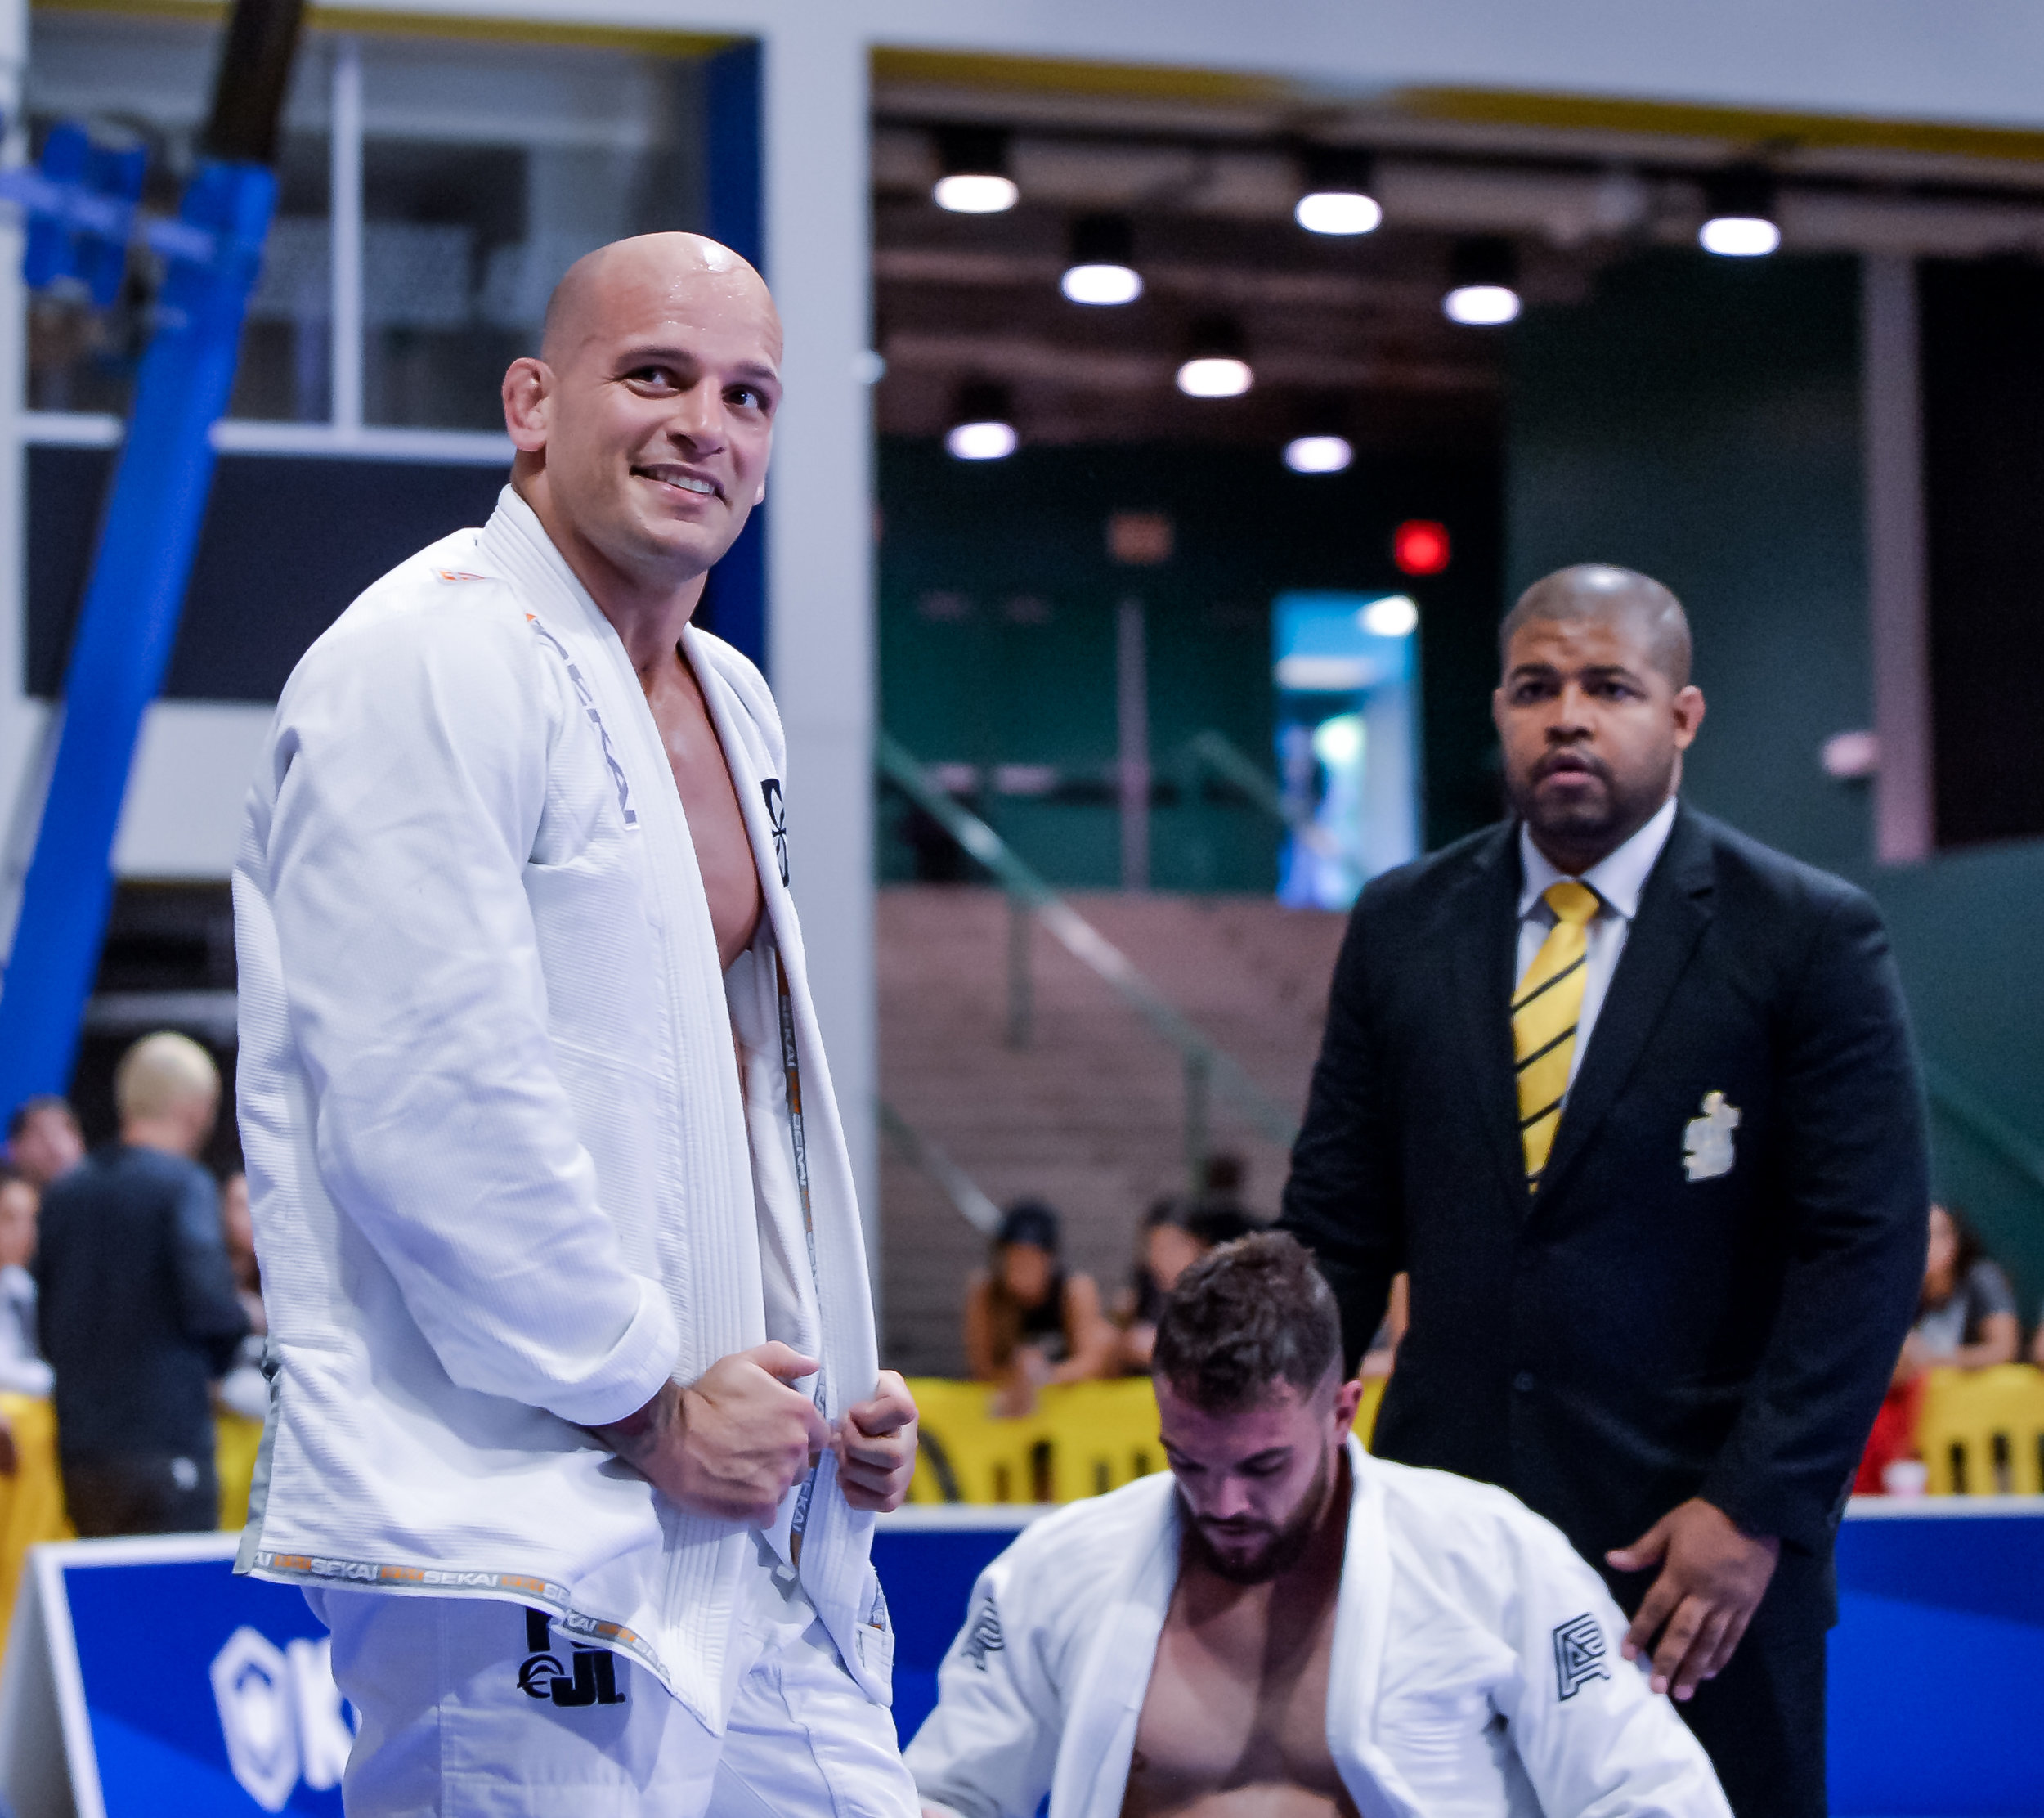 Legend Xande Ribeiro returned to the World Championships to vie for his 8th Heavy Weight title (he's also a 2 X Absolute Champion). This photo was taken after Xande defeated his first opponent and heard his 8 year old daughter shouting her joy to him from the stands.